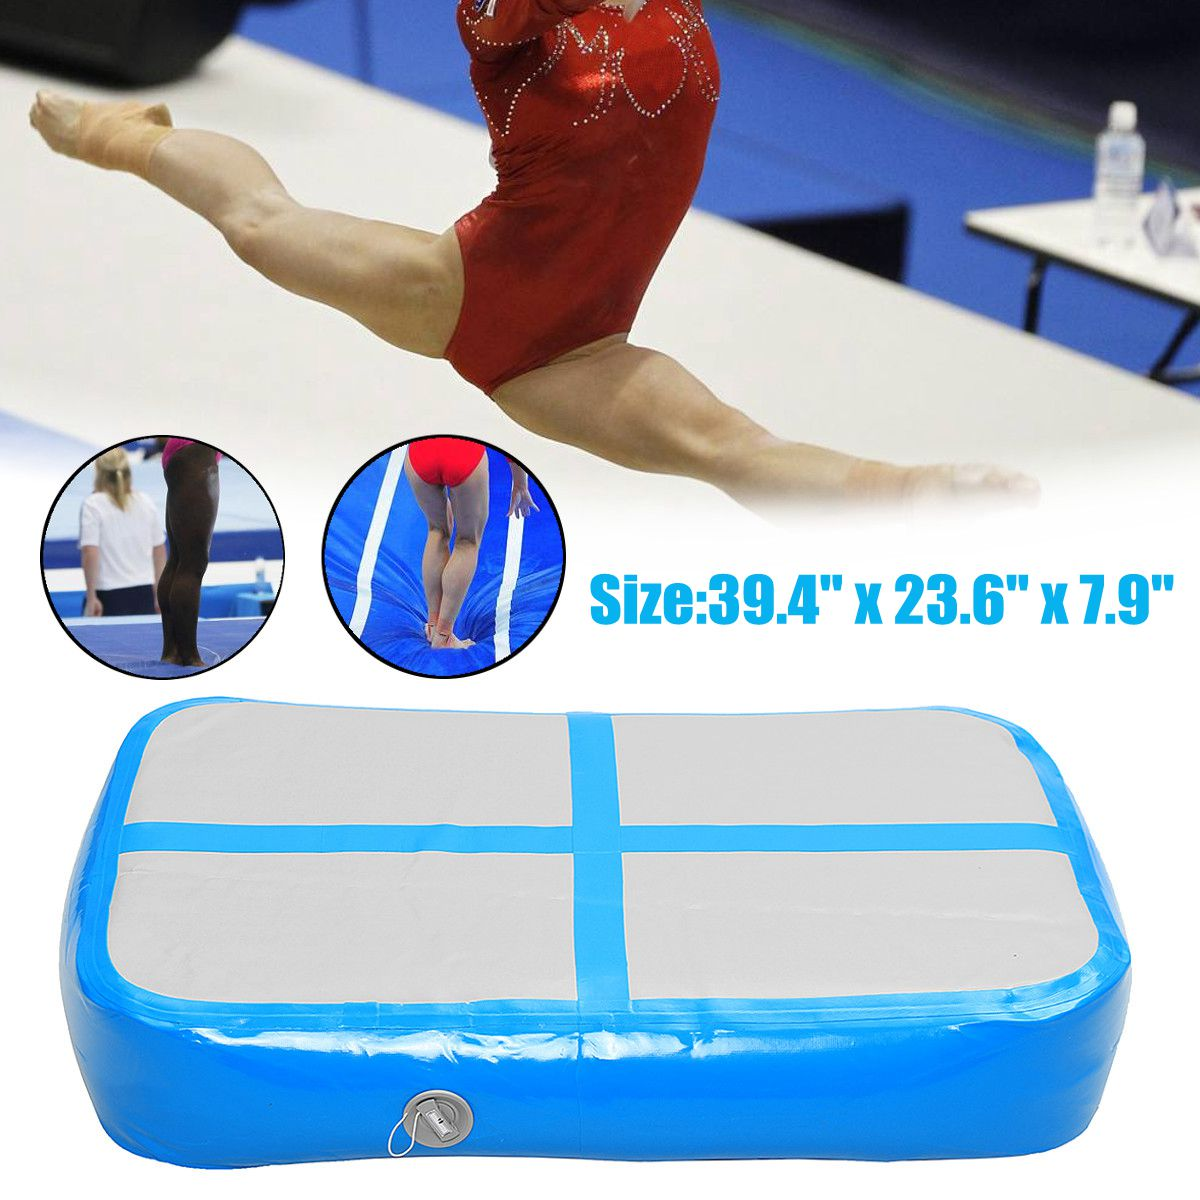 1x0.6x0.2m Inflatable Gymnastics Mat Airtrack Yoga Mattress Floor Tumbling Pad Sport Equipment